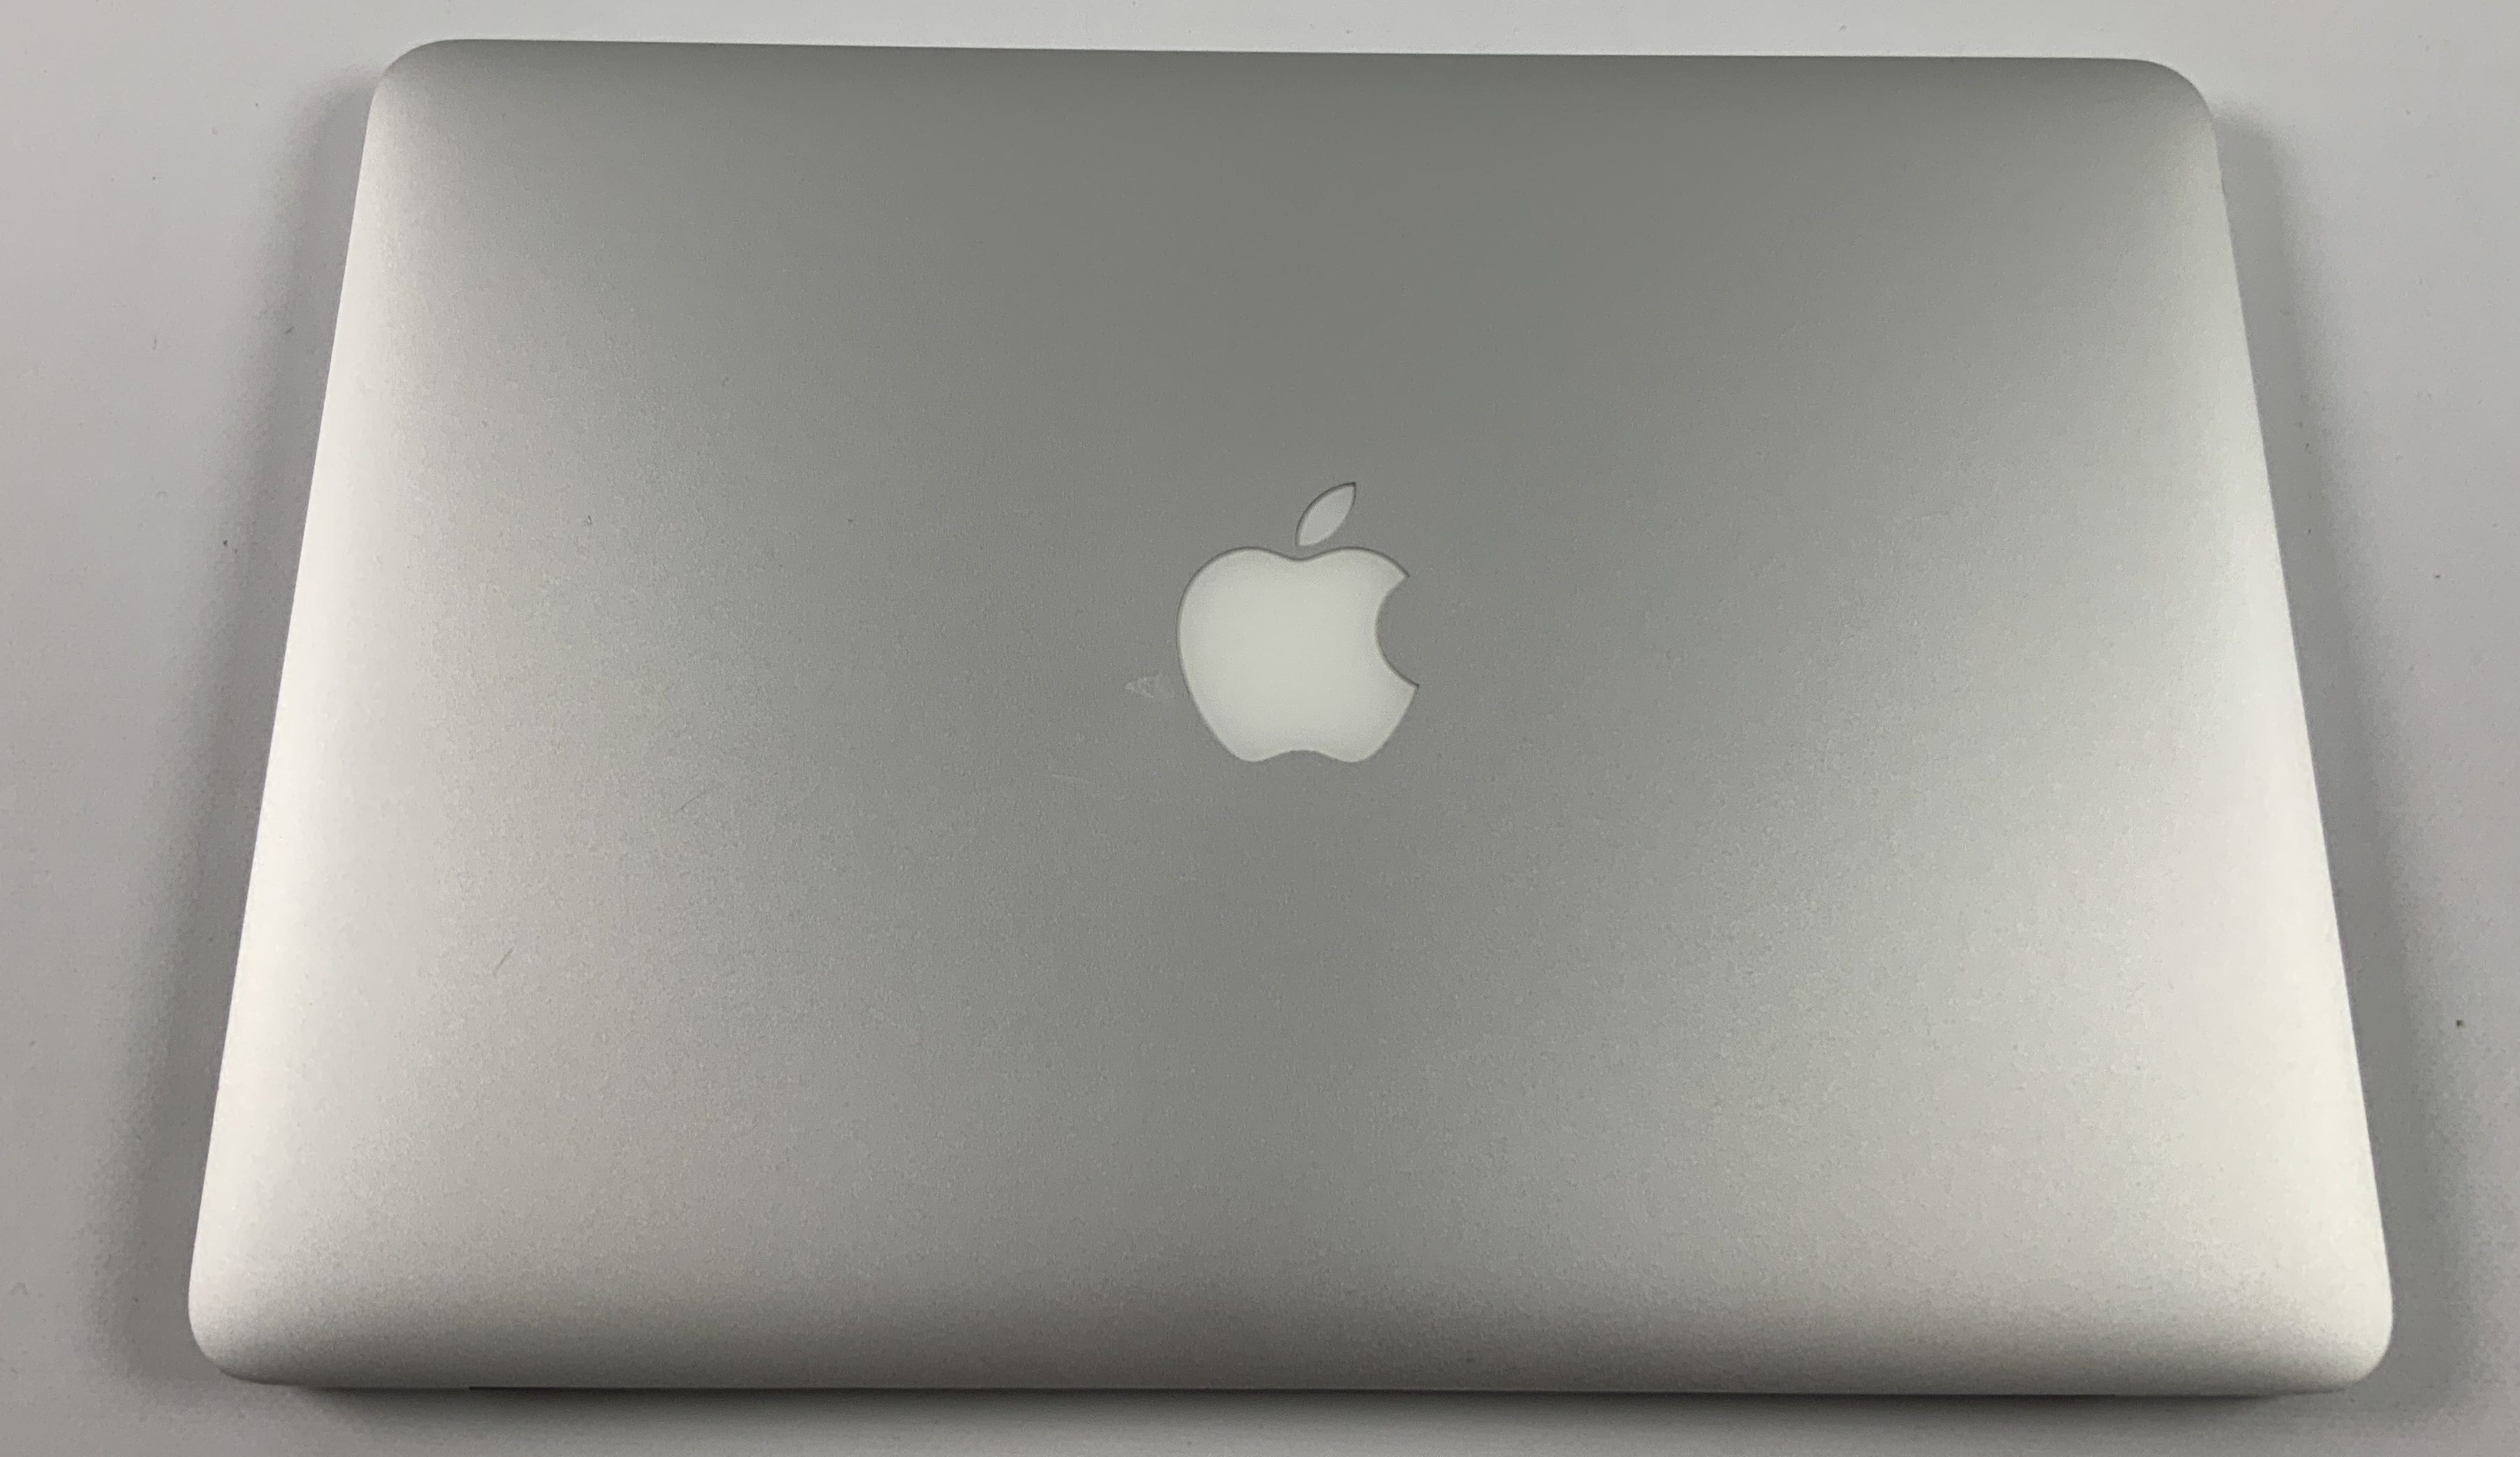 "MacBook Pro Retina 13"" Early 2015 (Intel Core i5 2.7 GHz 8 GB RAM 256 GB SSD), Intel Core i5 2.7 GHz, 8 GB RAM, 256 GB SSD, imagen 2"